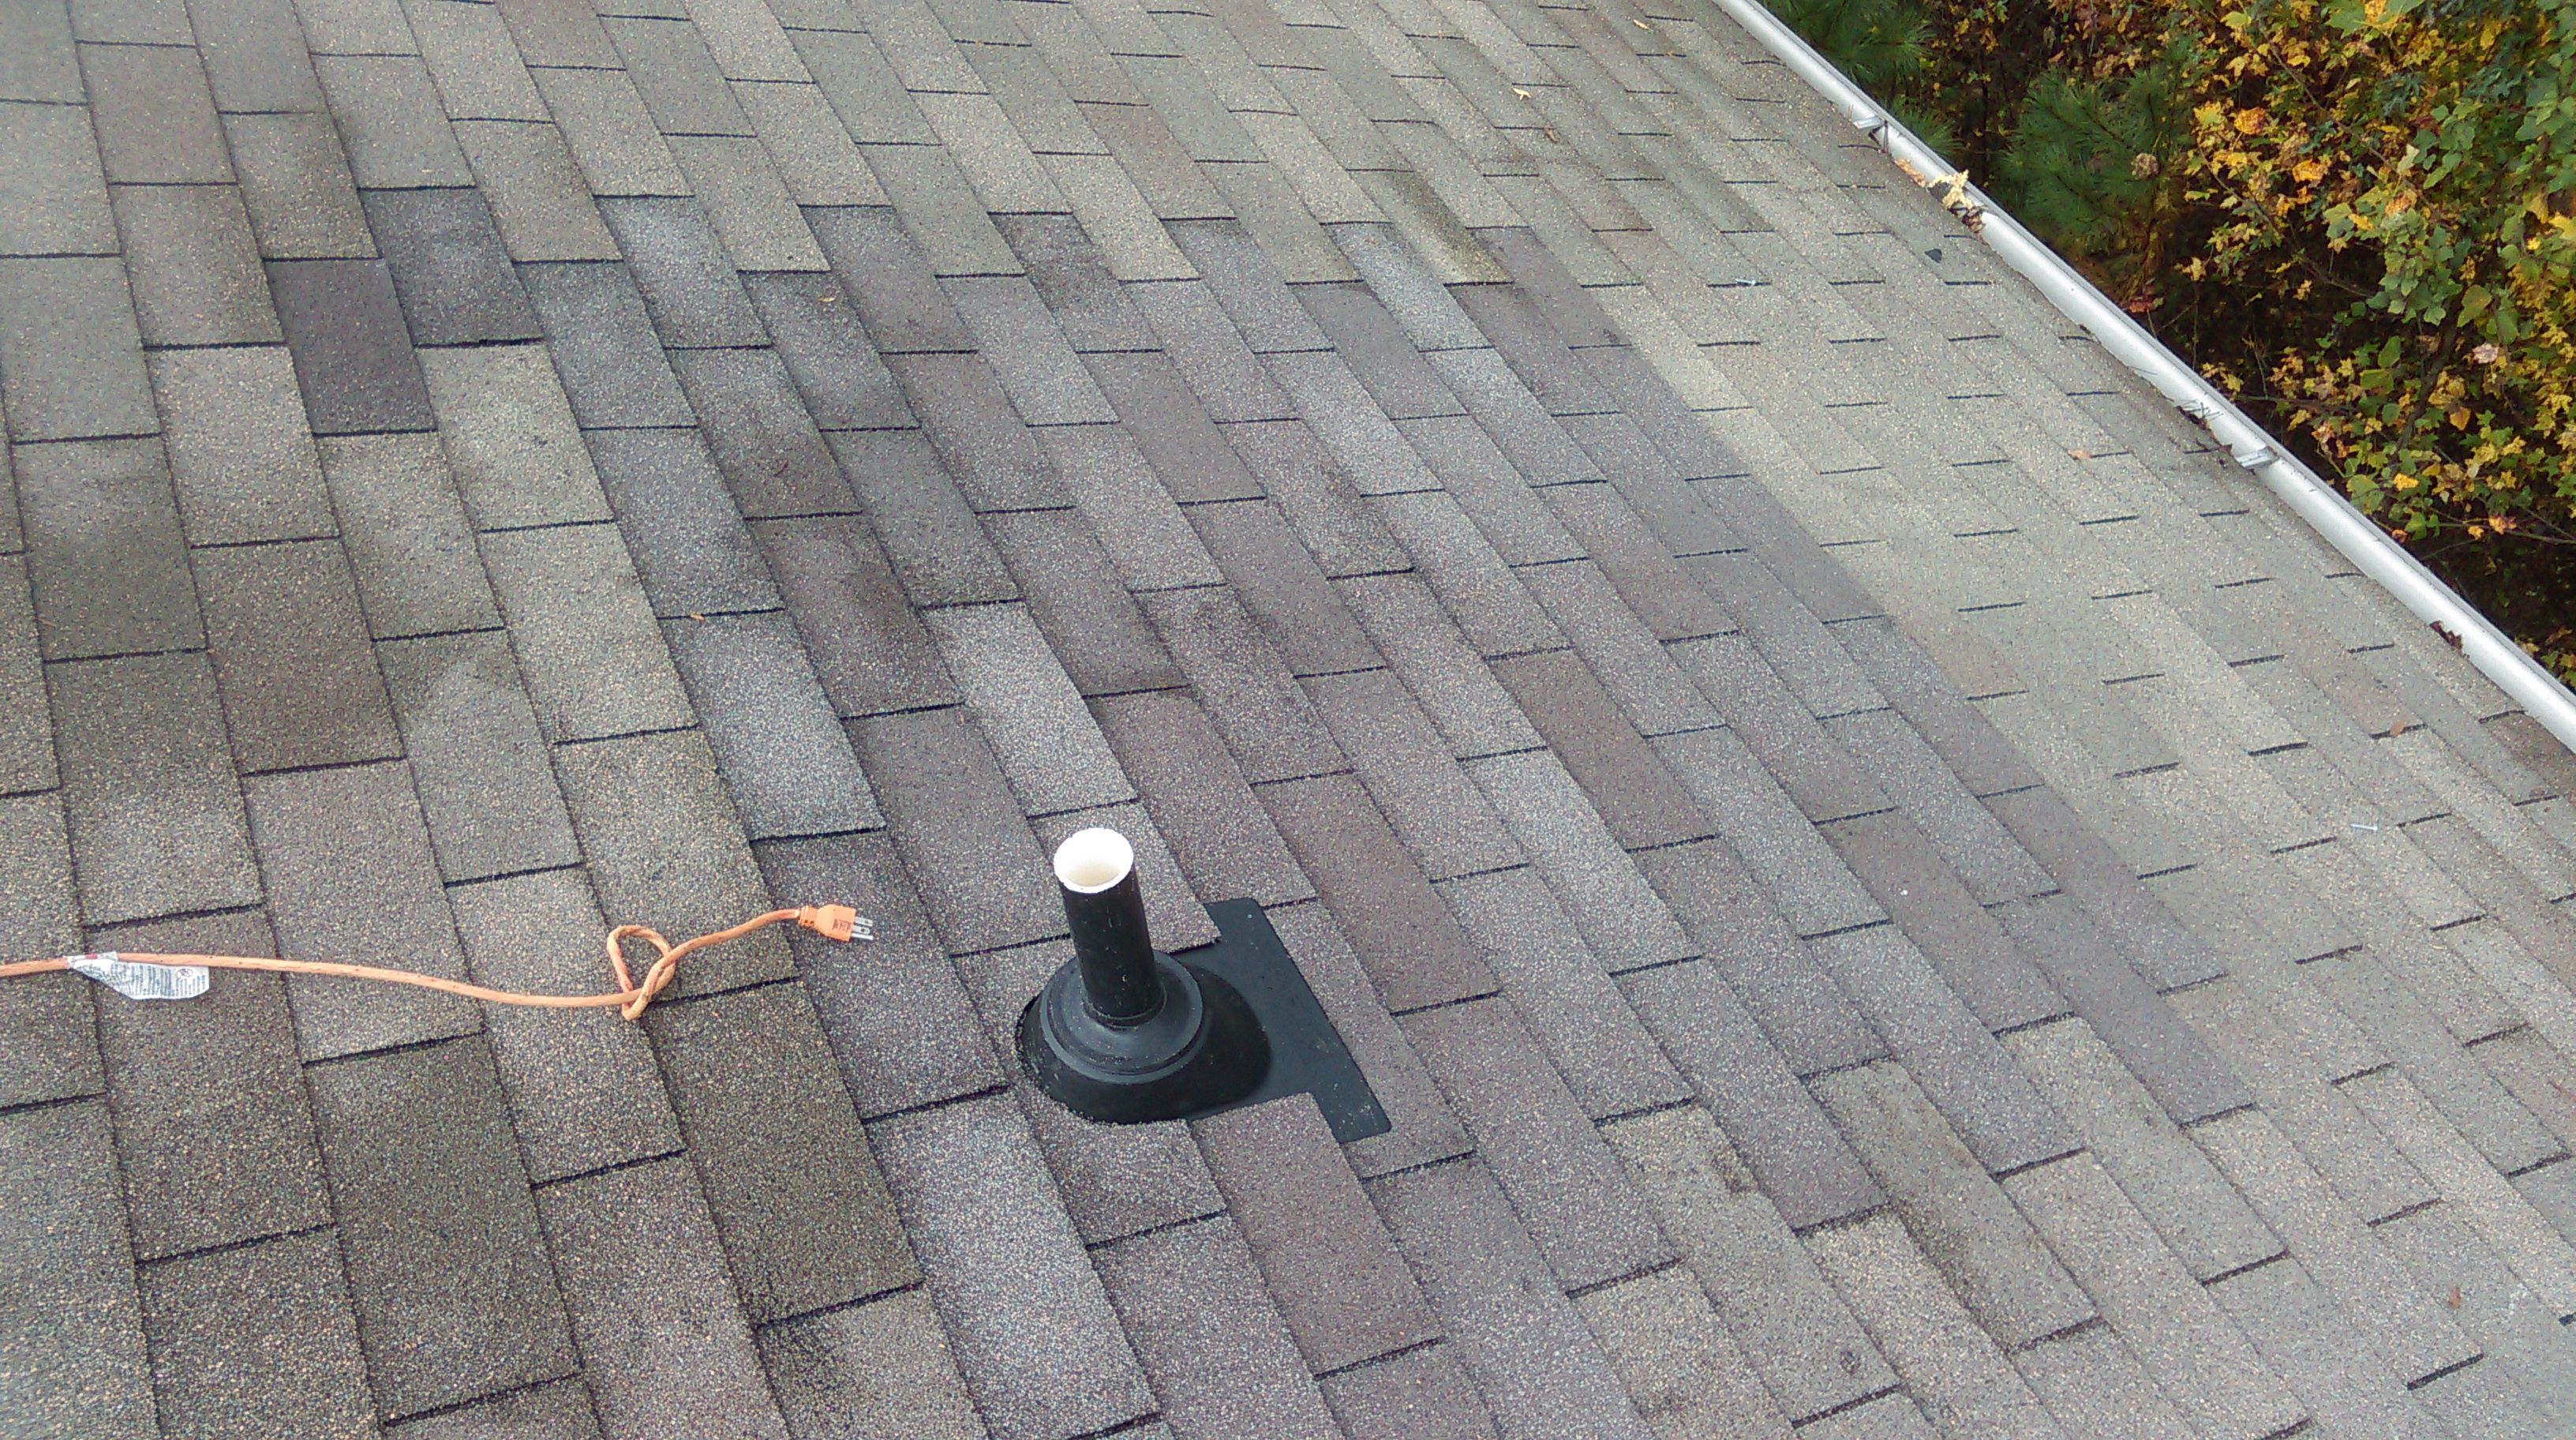 In the roofing trade for 19 years. Atlanta roof repair. Roofing contractor / Acworth / Woodstock / Roswell / Marietta / Alpharetta